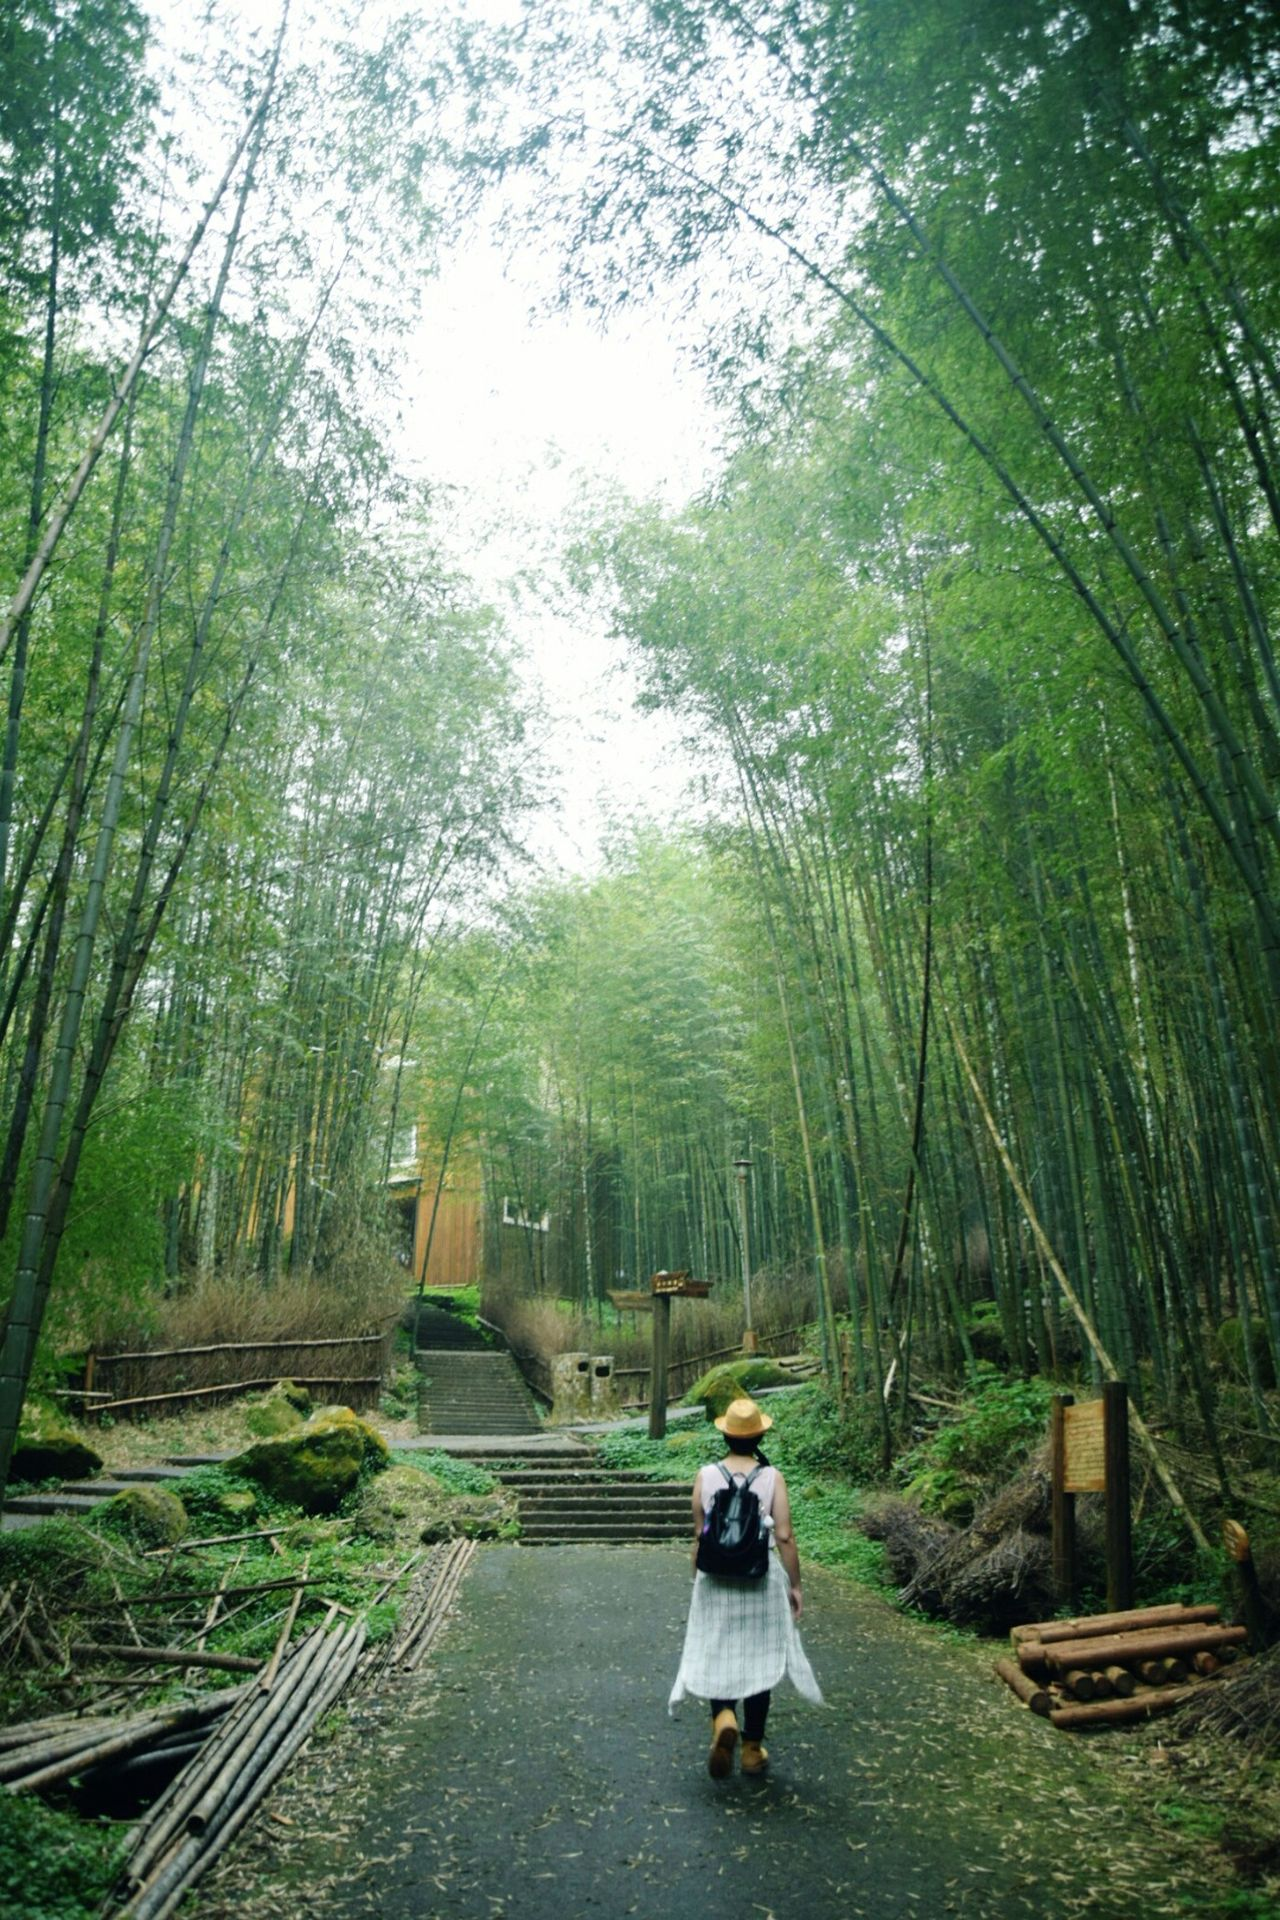 Nature Outdoors Forest Bamboo - Plant Freedom Travel Travel Photography Enjoying Life Free Landscape Nature Photography Naturelover Nature_perfection Landscape_lovers Landscape_photography Naturecolors Bamboo Bamooforest Nikon Nikonphotography Nikond5300